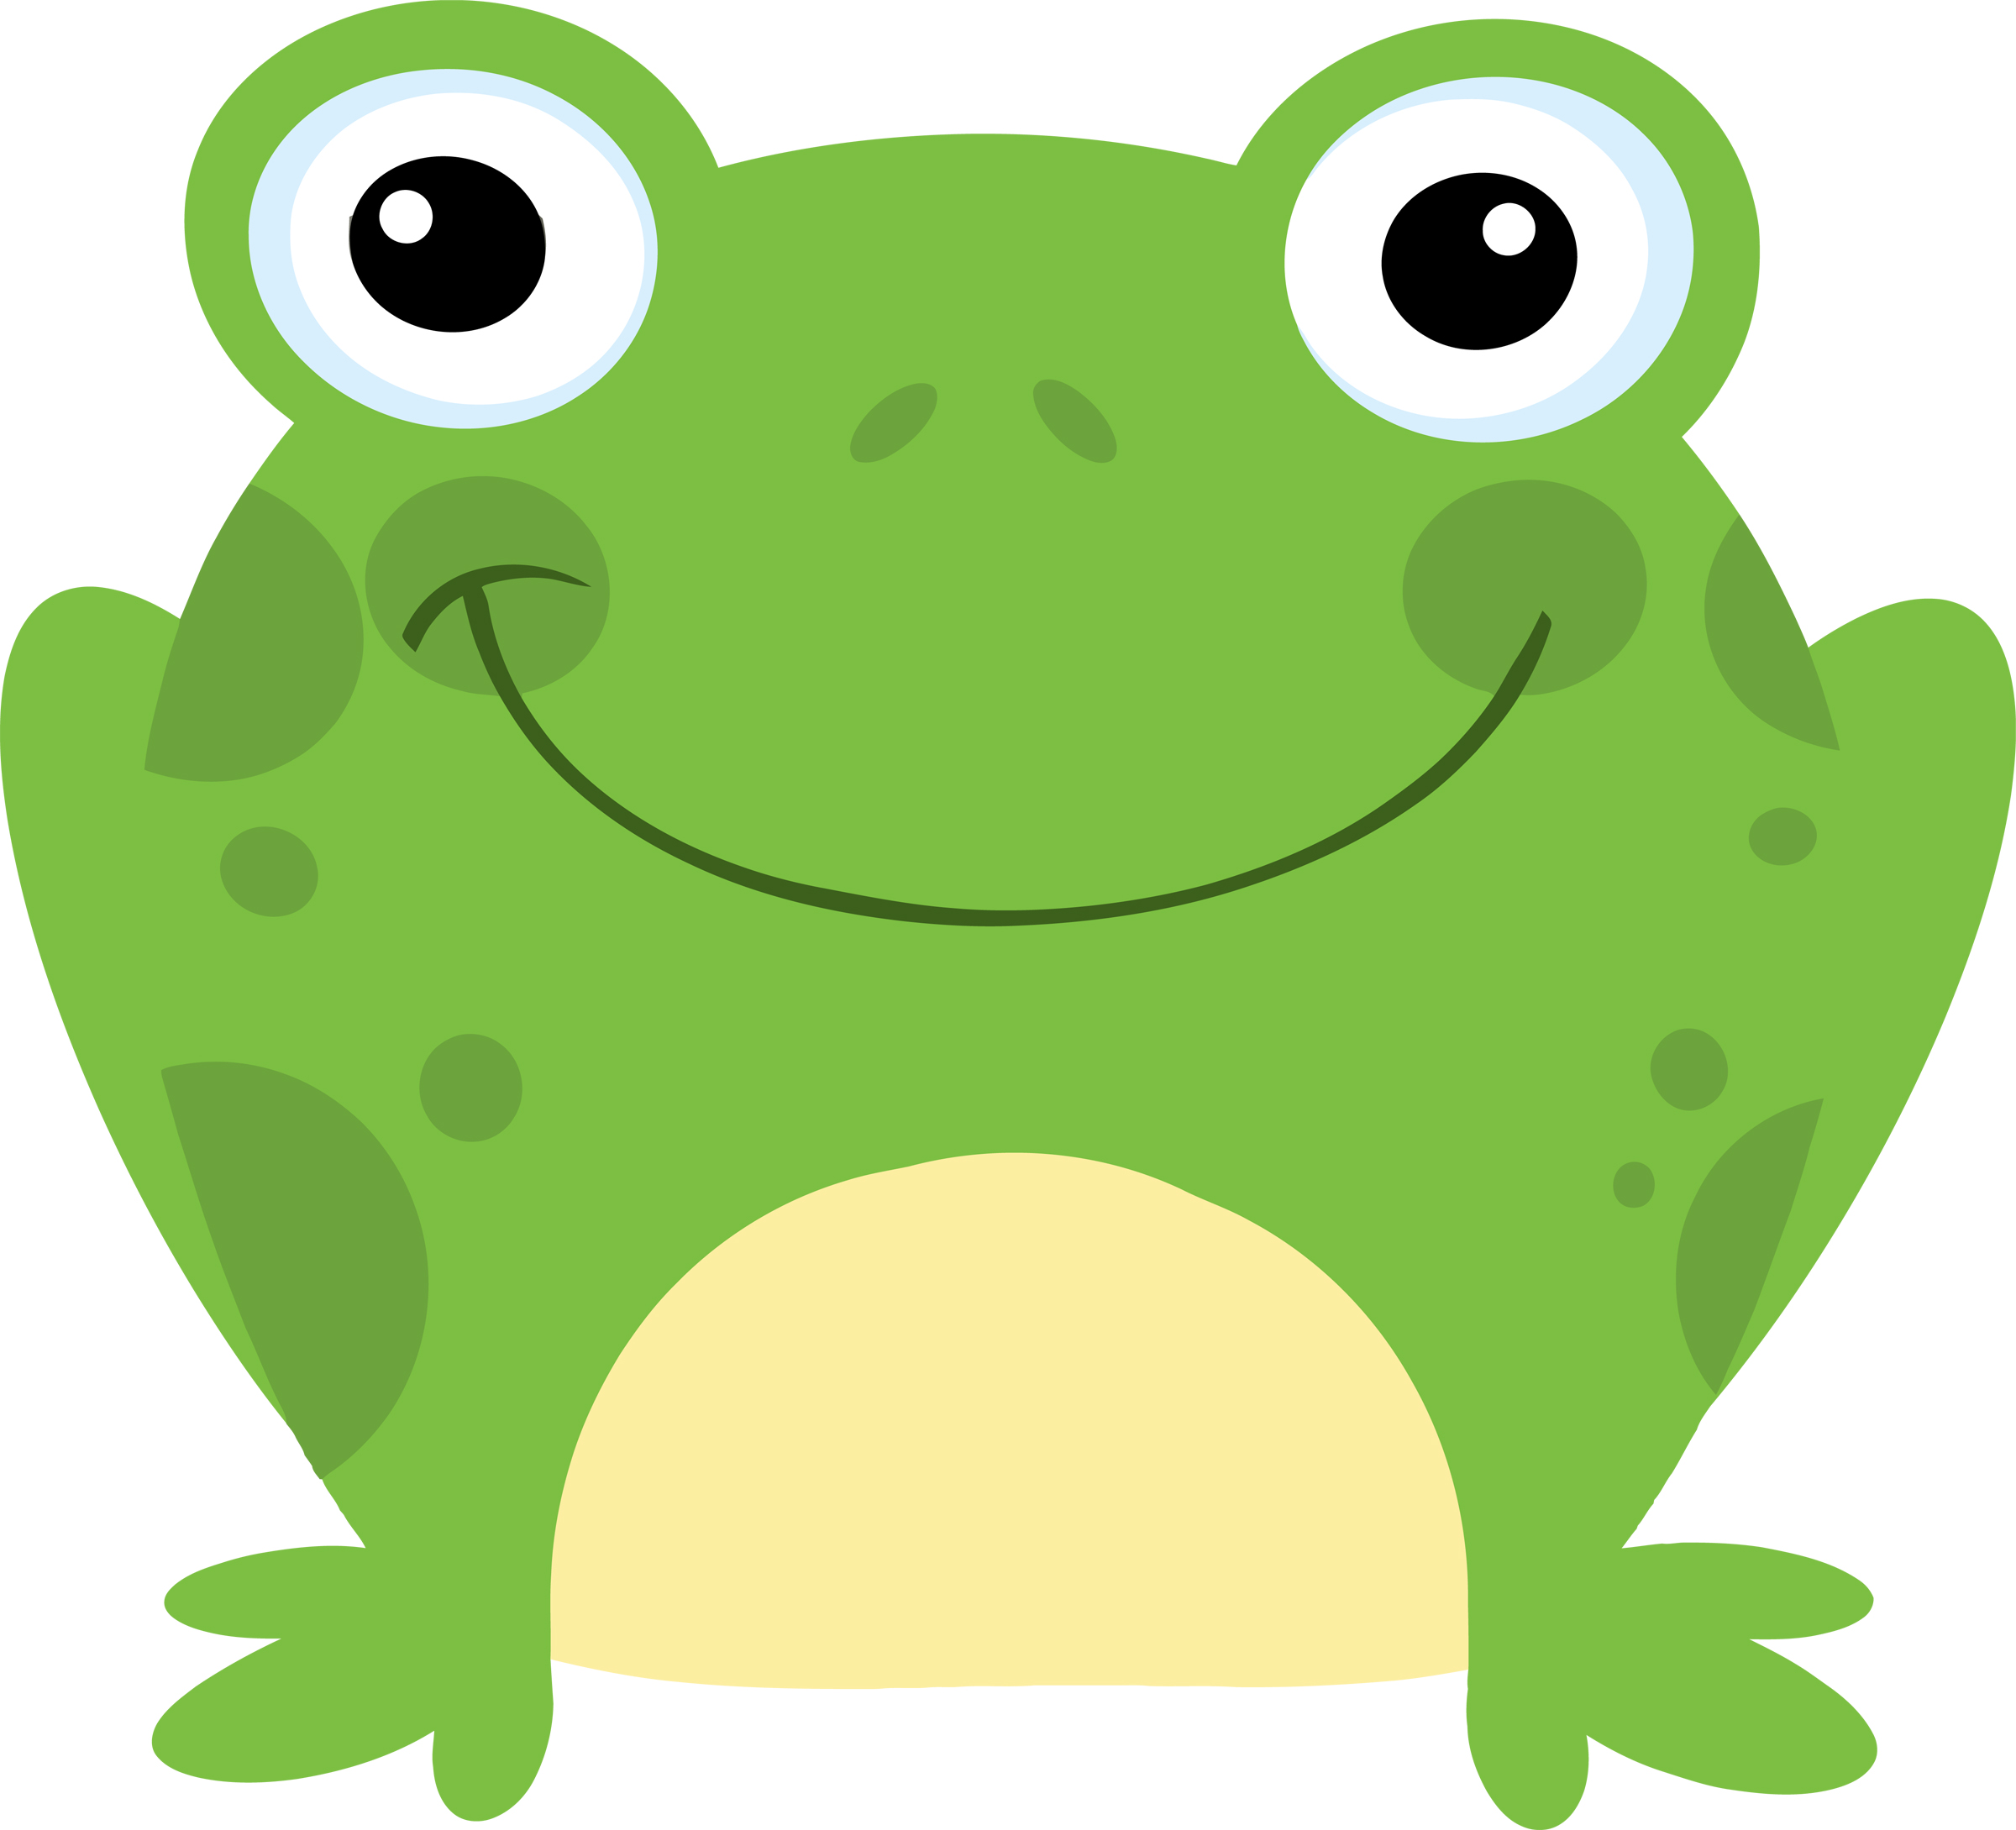 frog silhouette vector at getdrawings com free for personal use rh getdrawings com